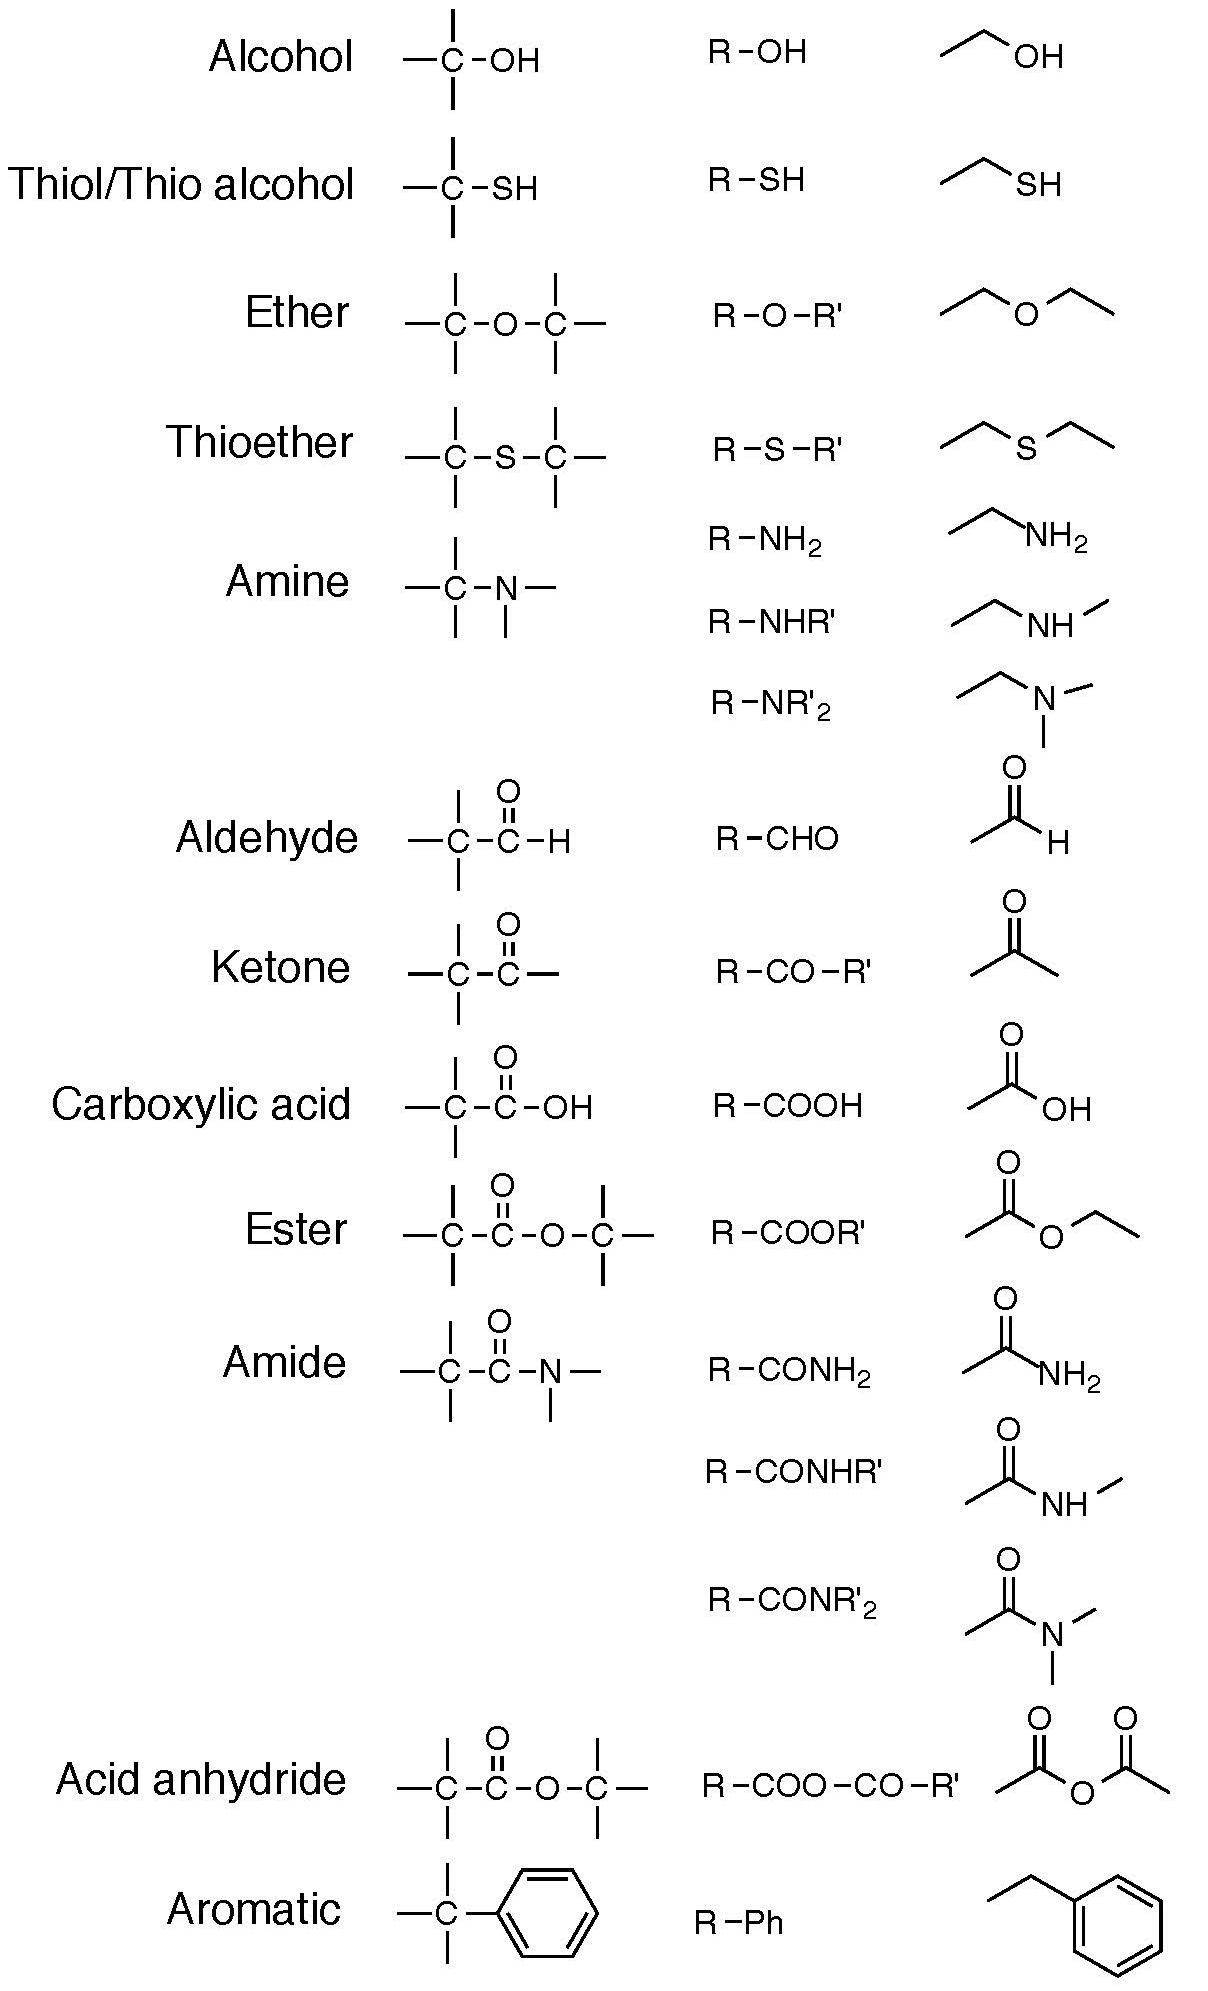 A Table Showing The Functional Groups For Alcohol Thiol Ether Thioether Amine Aldehyde